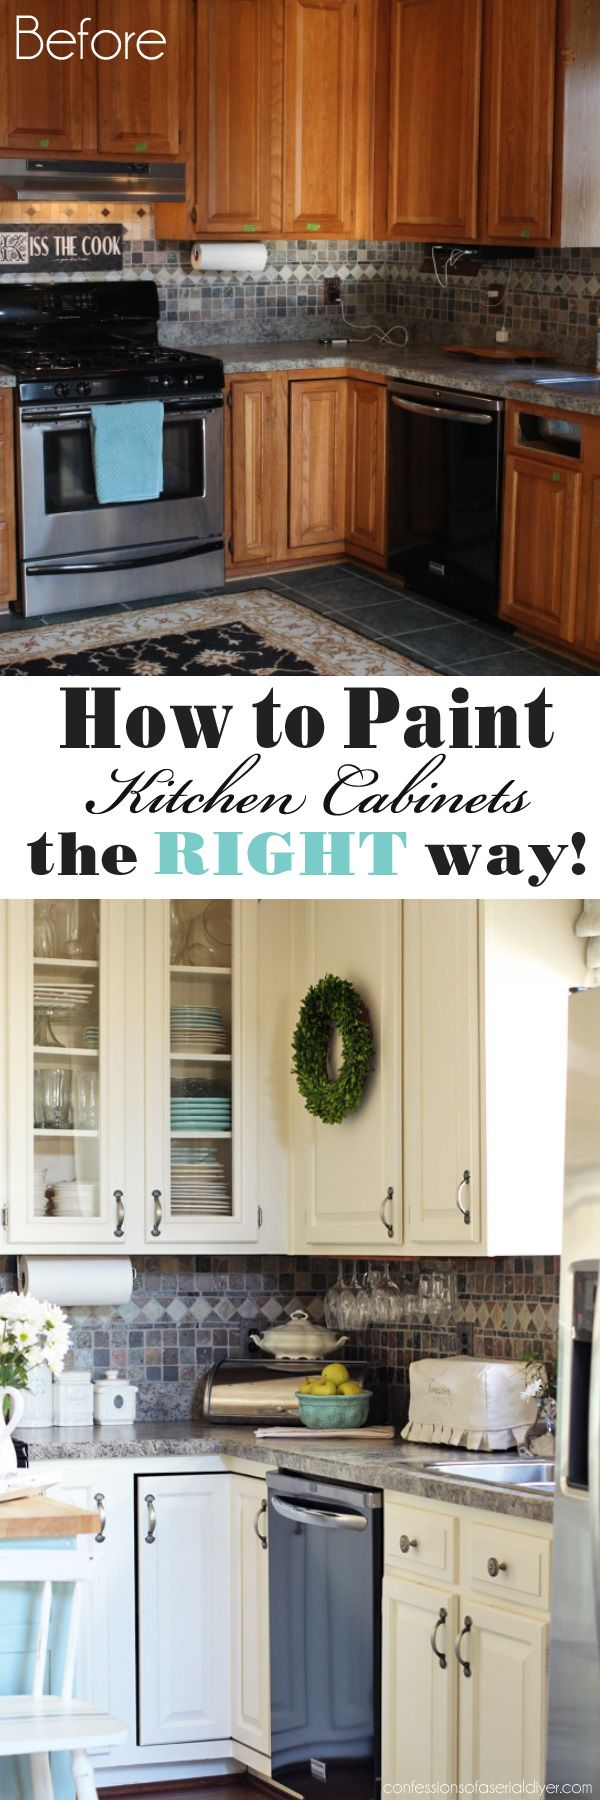 Homemade kitchen cabinets ideas - How To Paint Kitchen Cabinets The Right Way From Confessions Of A Serial Do It